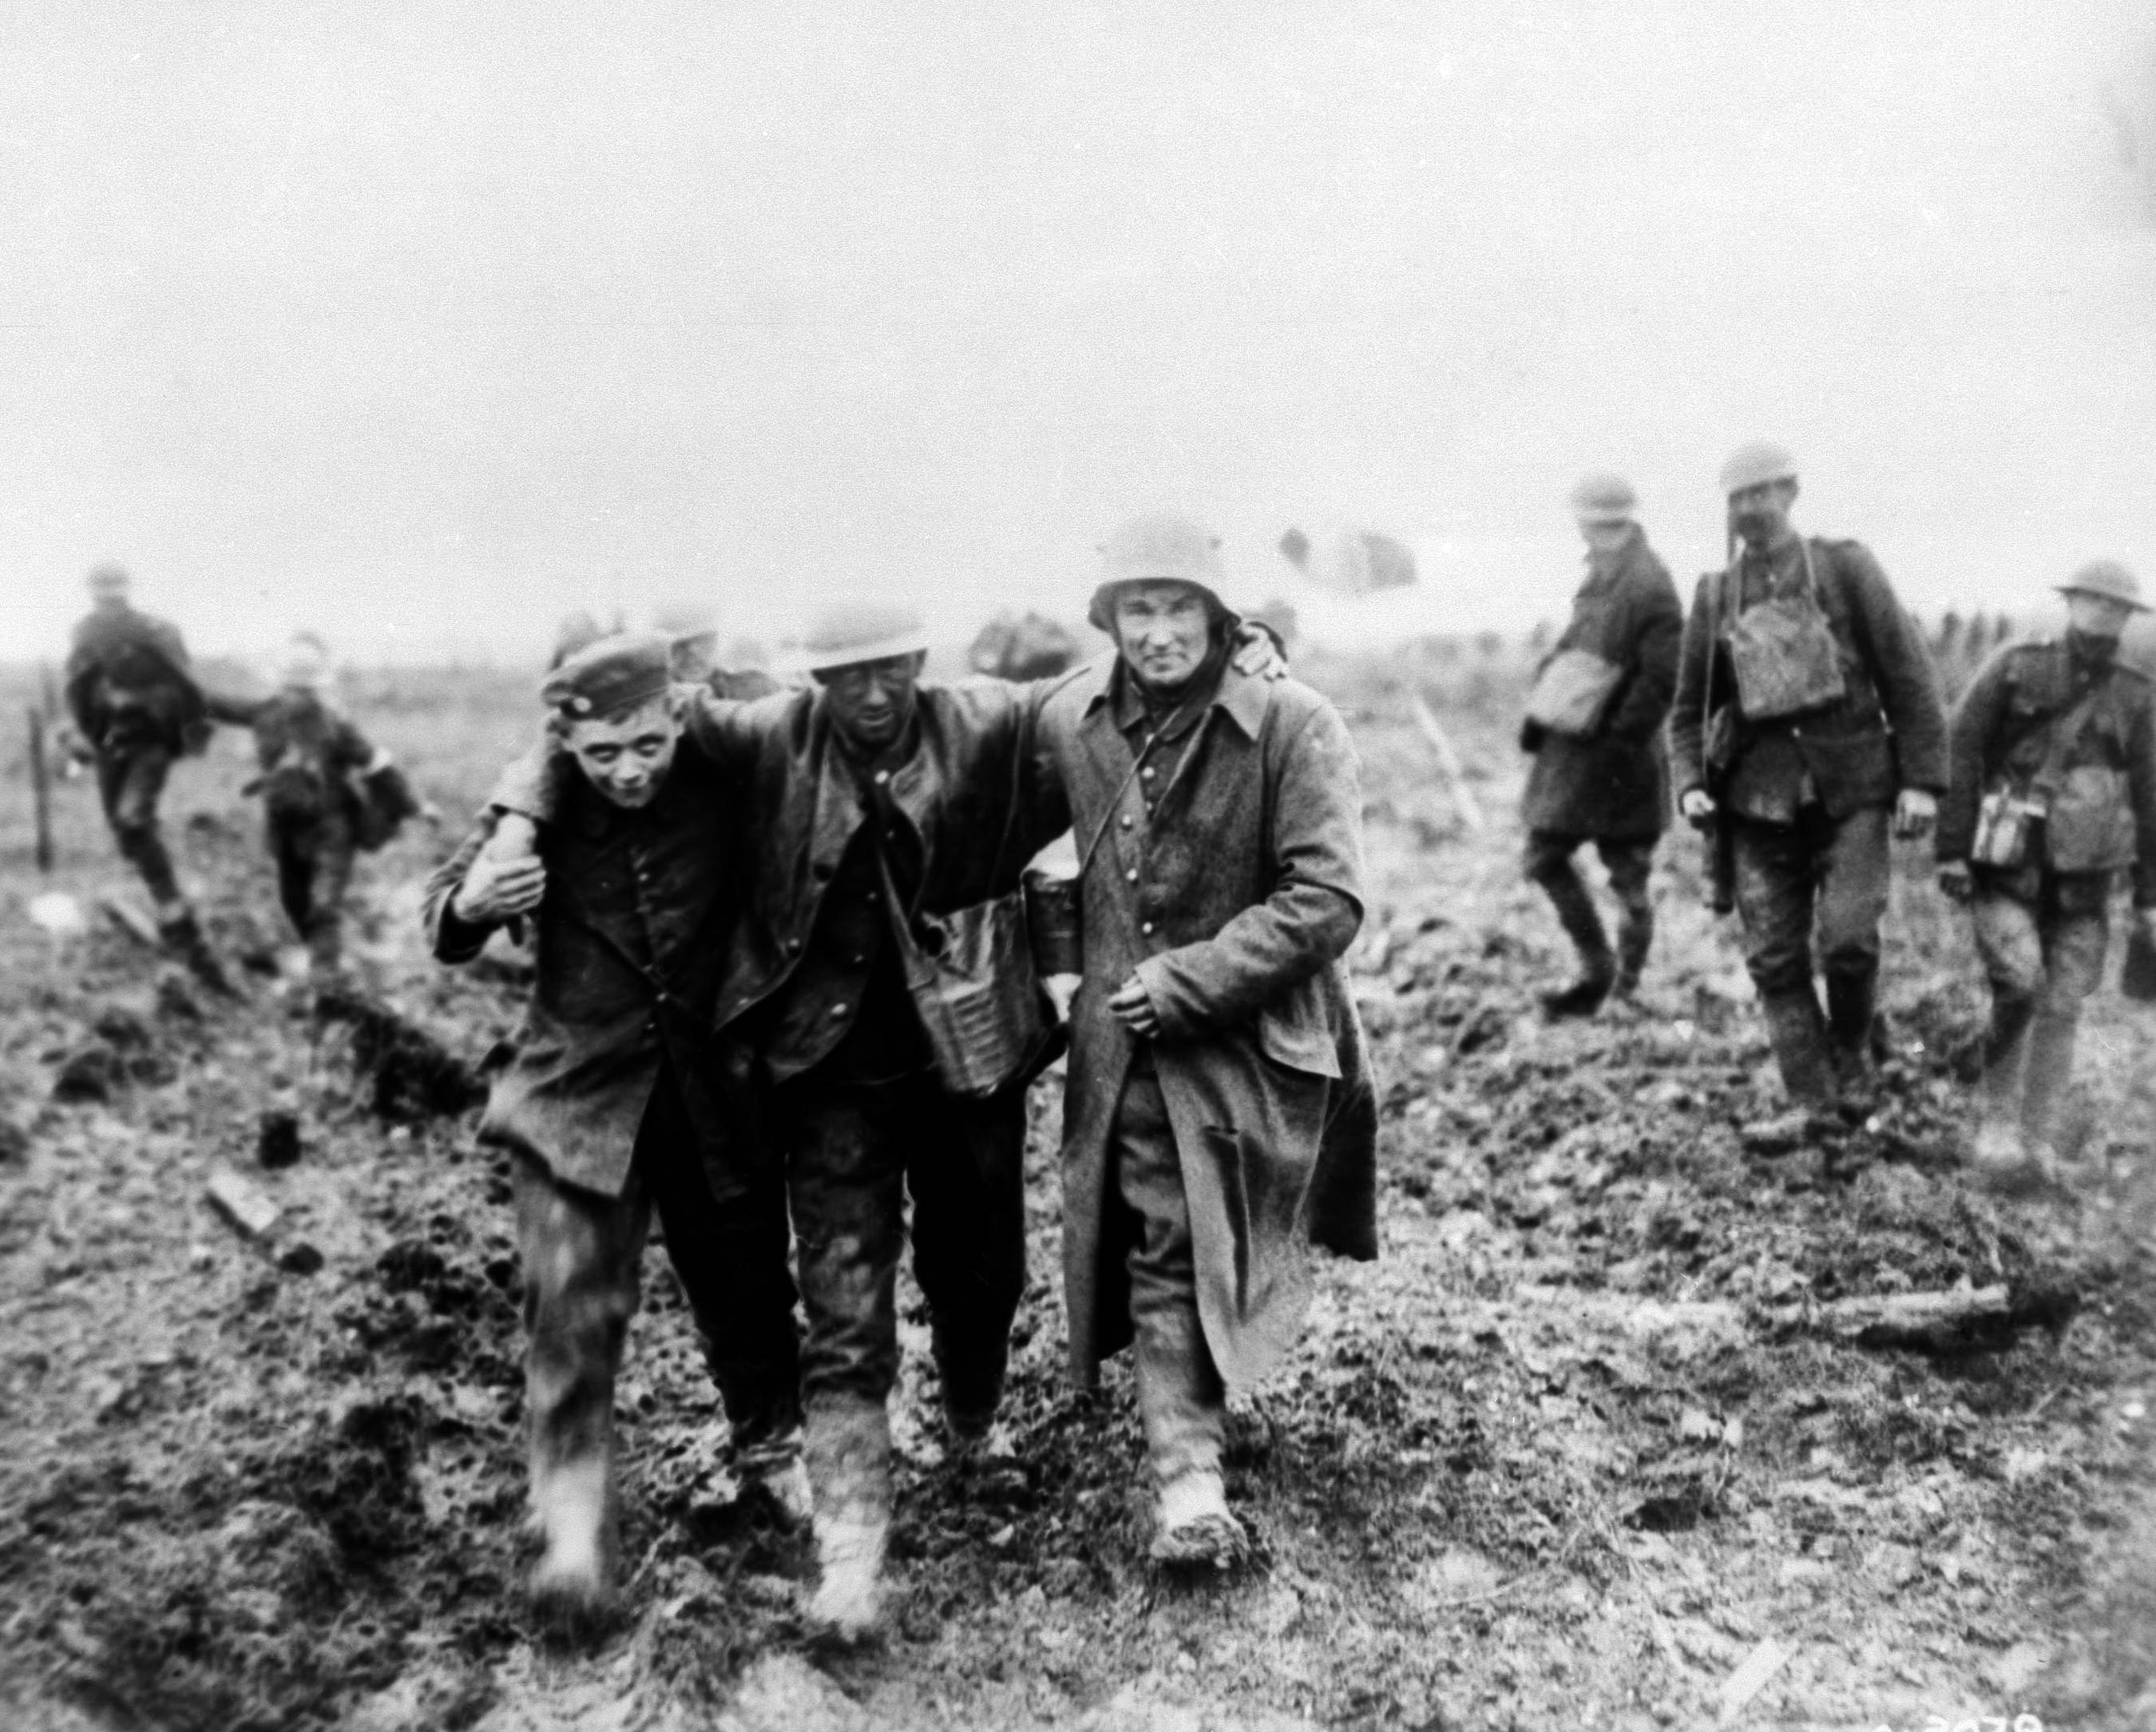 61 OF 100: In this 1917 file photo, German soldiers bring in Canadian wounded during the Battle of Vimy, France, during World War I.